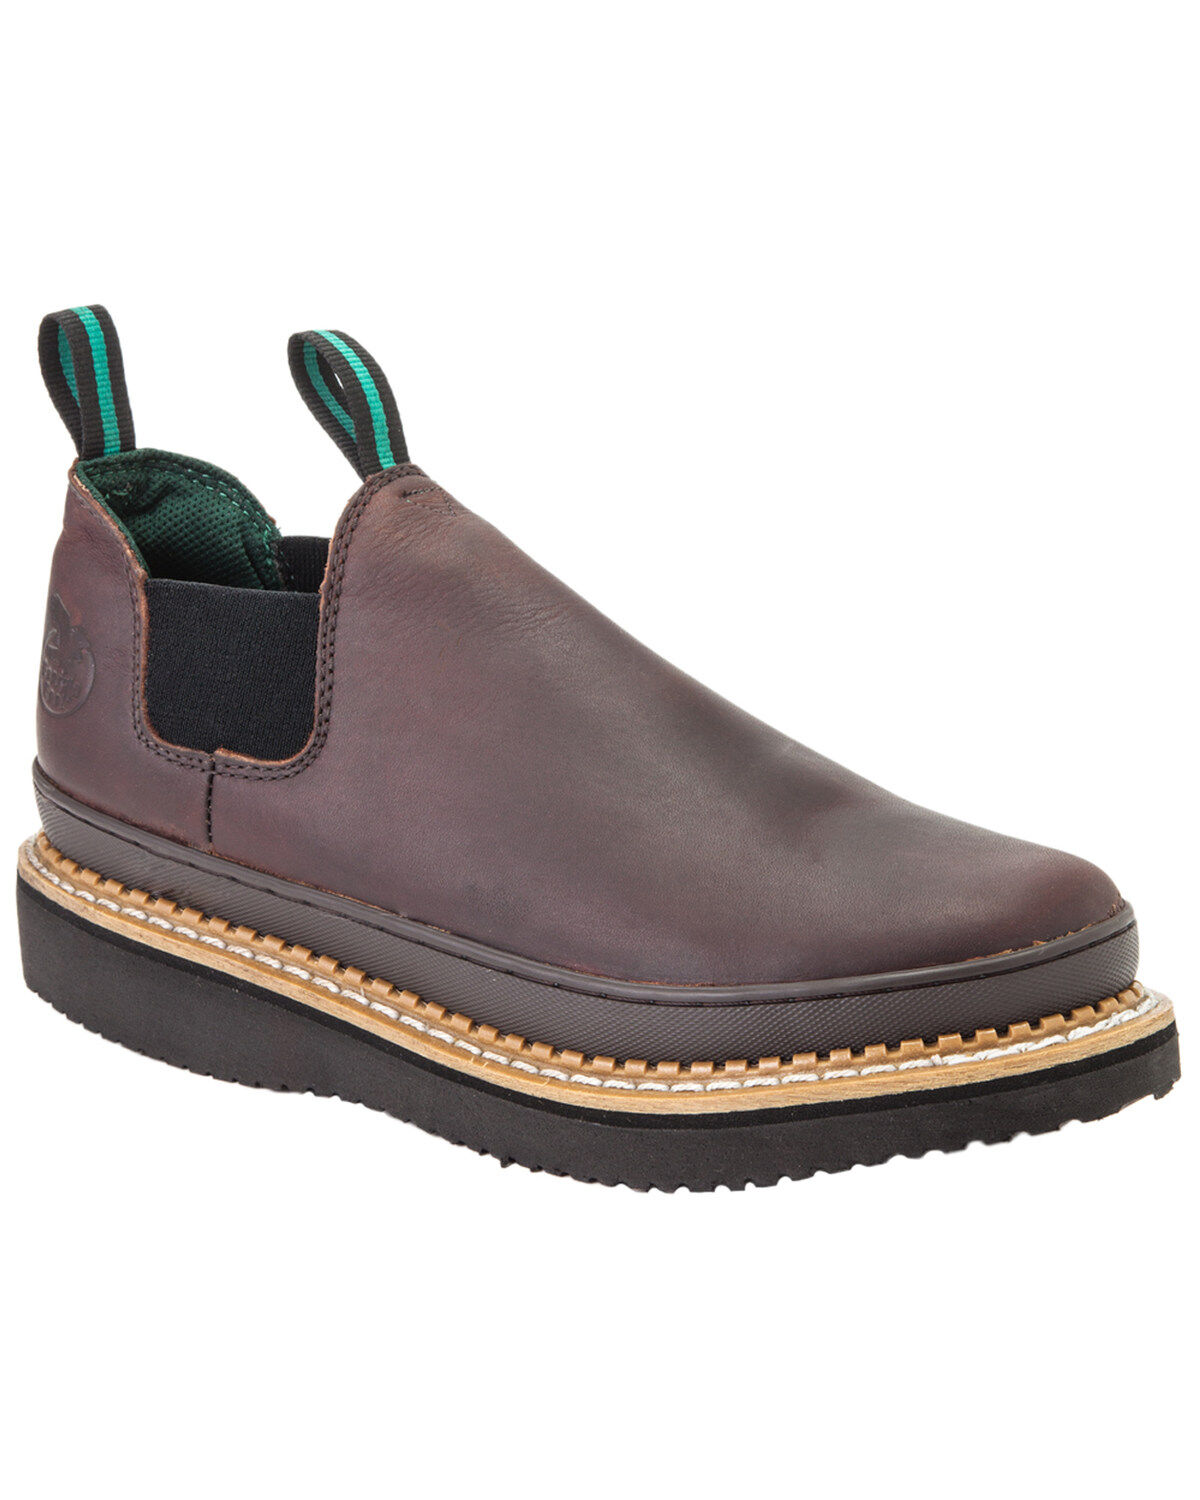 Work Shoes - Size 16 D - Boot Barn